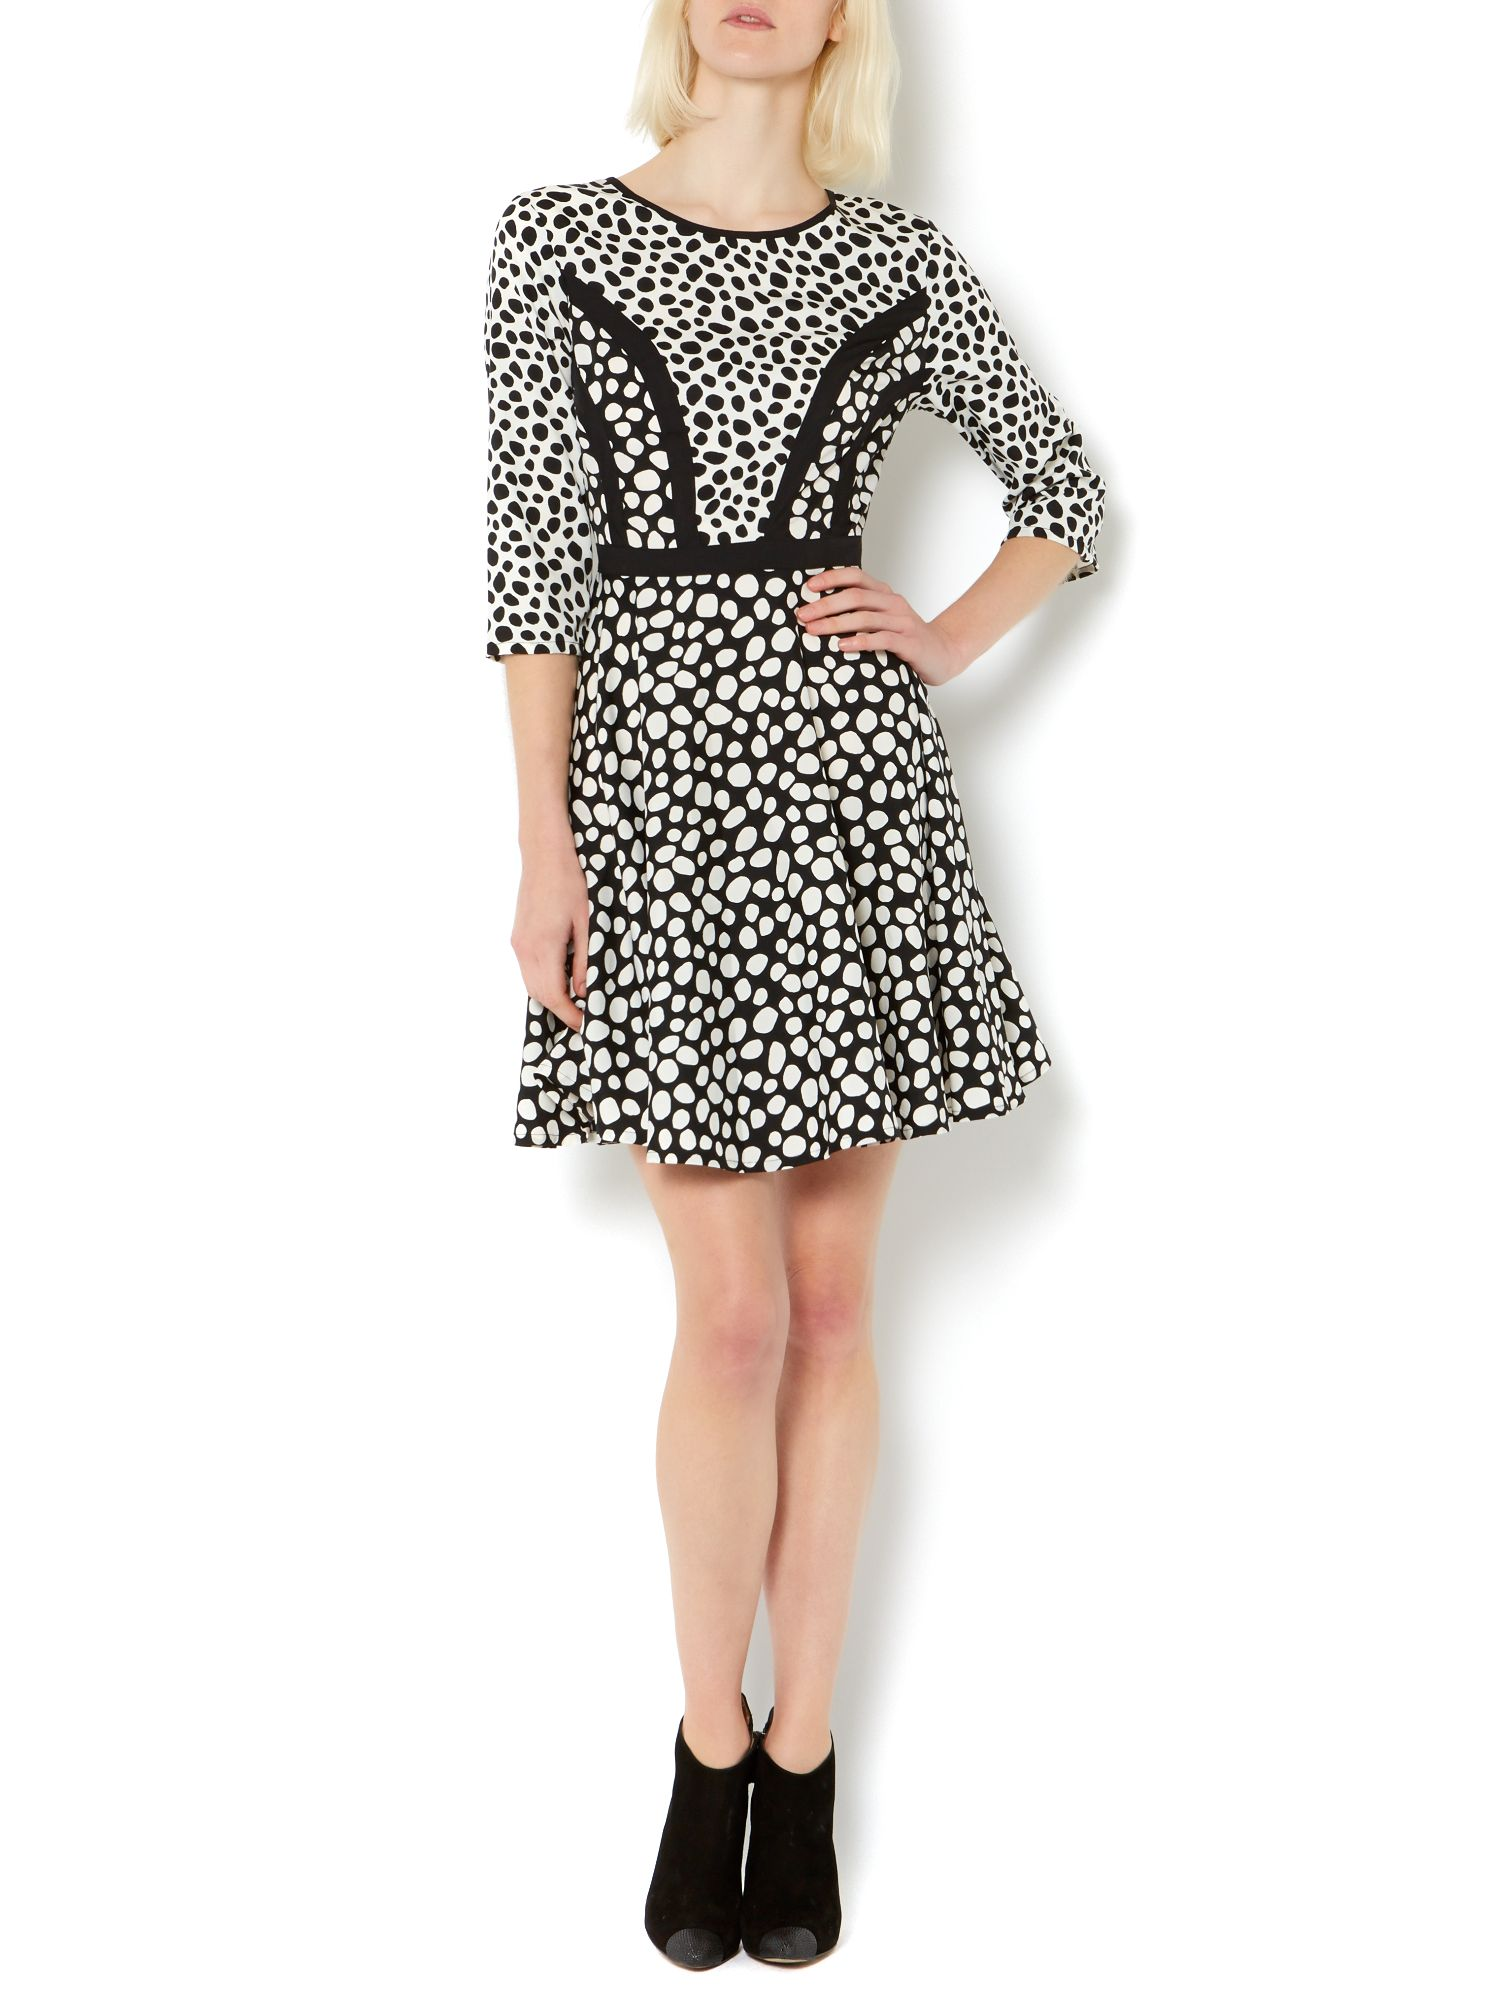 Spot woven print mix dress